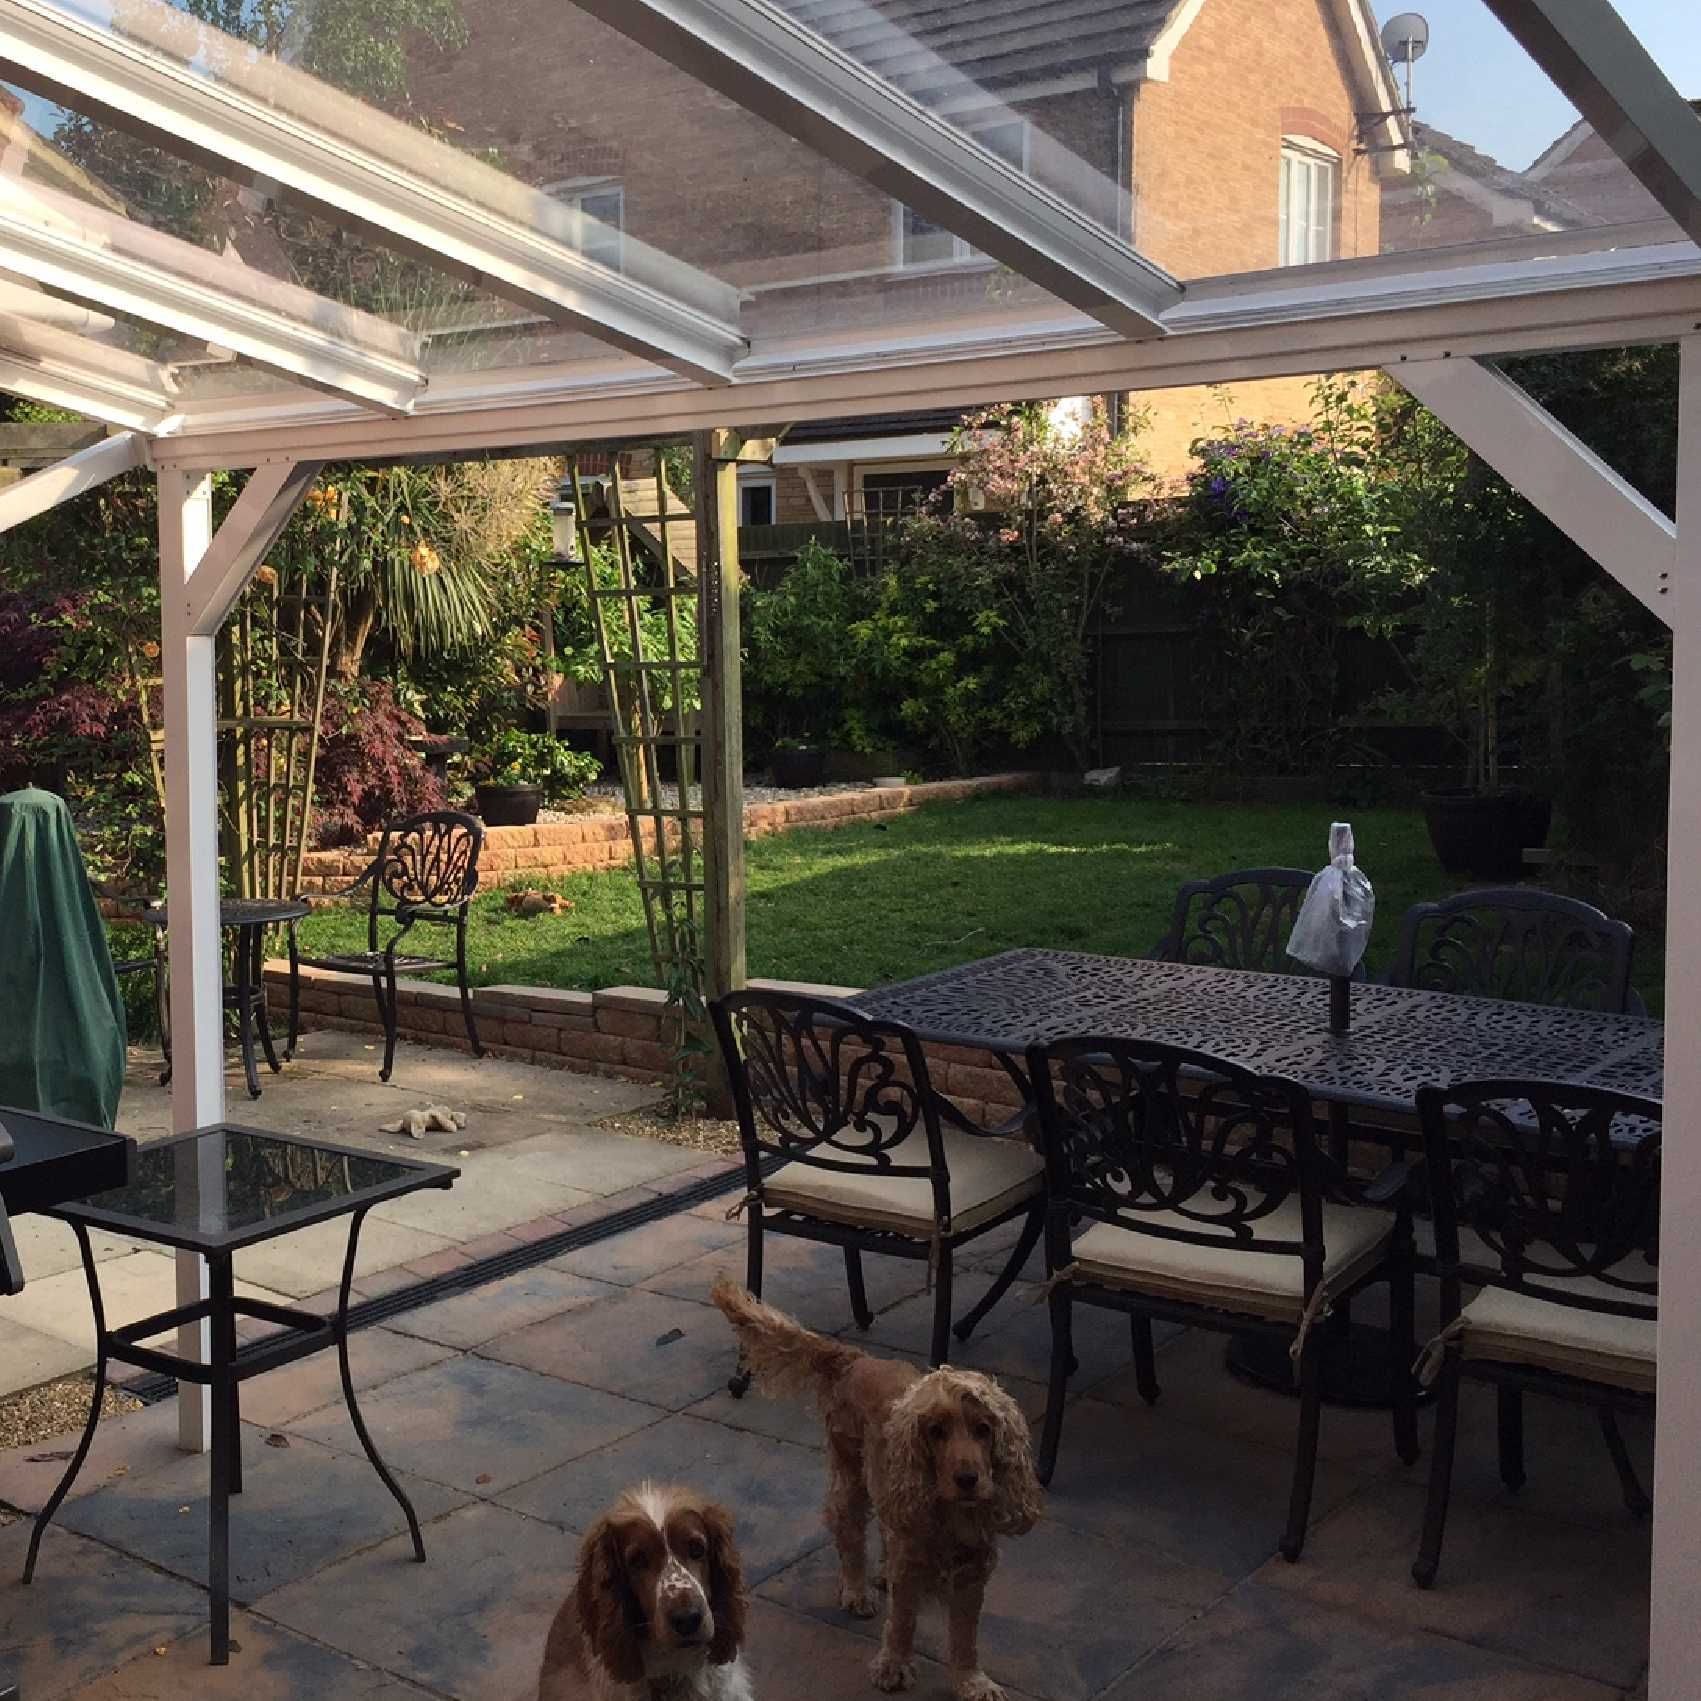 Affordable Omega Smart White Lean-To Canopy with 6mm Glass Clear Plate Polycarbonate Glazing - 4.9m (W) x 3.0m (P), (3) Supporting Posts